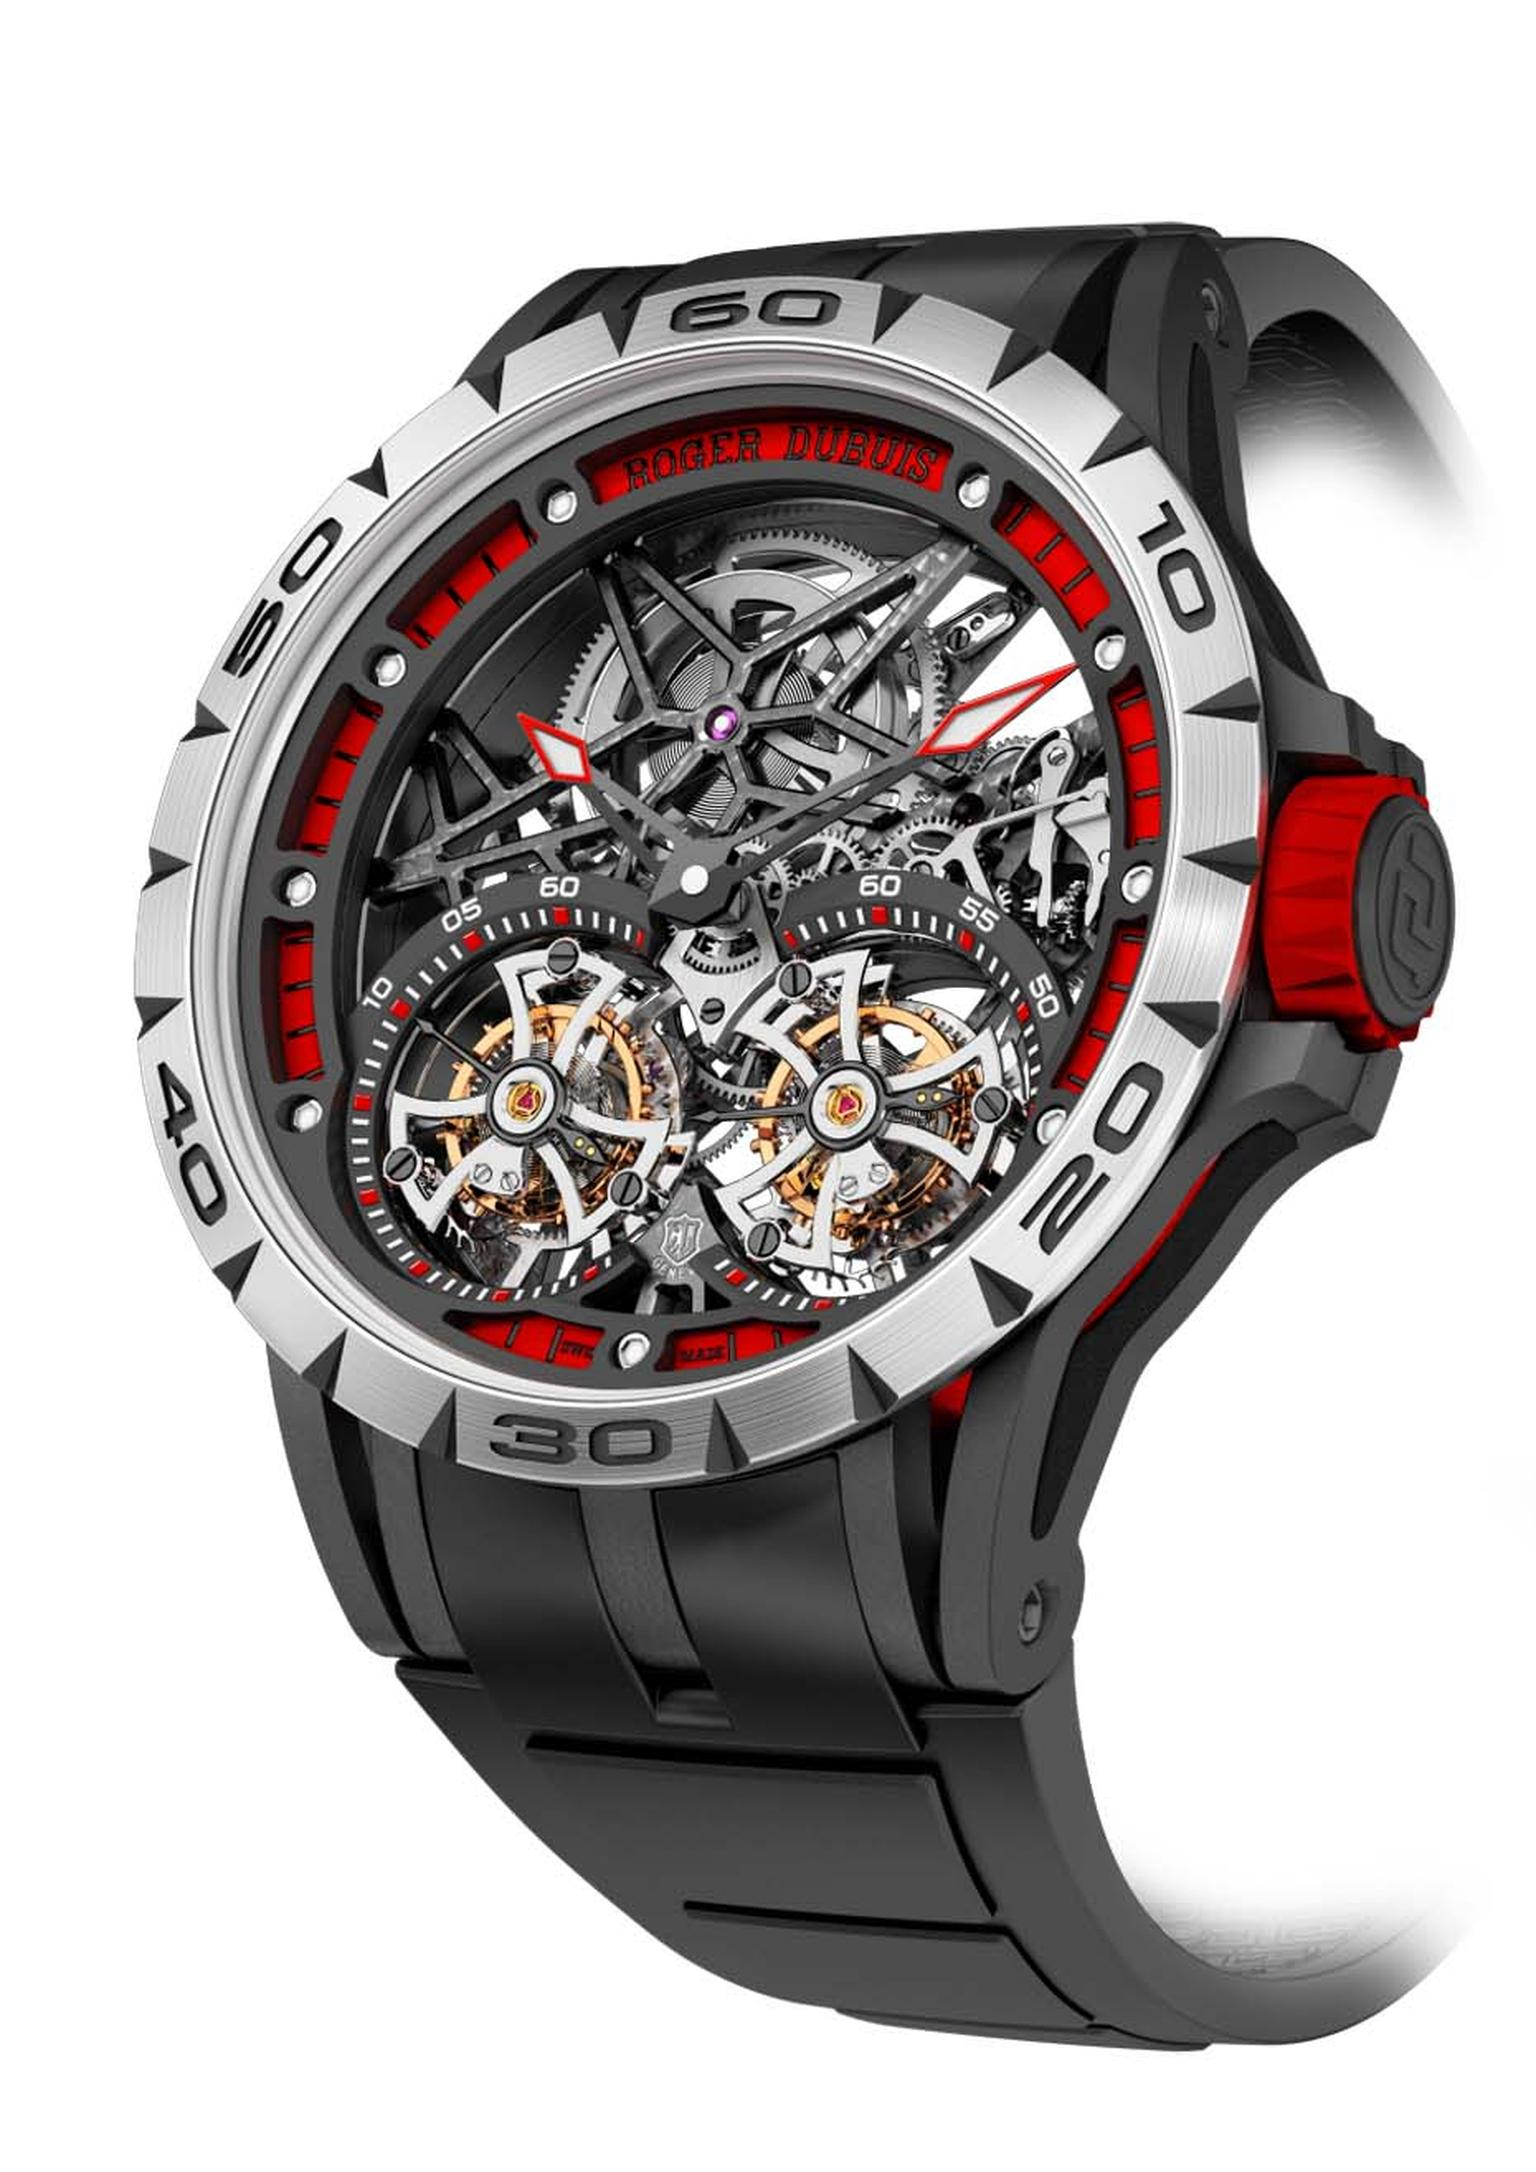 Roger Dubuis Excalibur Spider Skeleton Double Flying Tourbillon comes in a 47mm titanium case treated with black DLC, and features fiery red aluminium elements for a sporty impact and an unimpeded view of the RD01SQ automatic skeletonised movement.